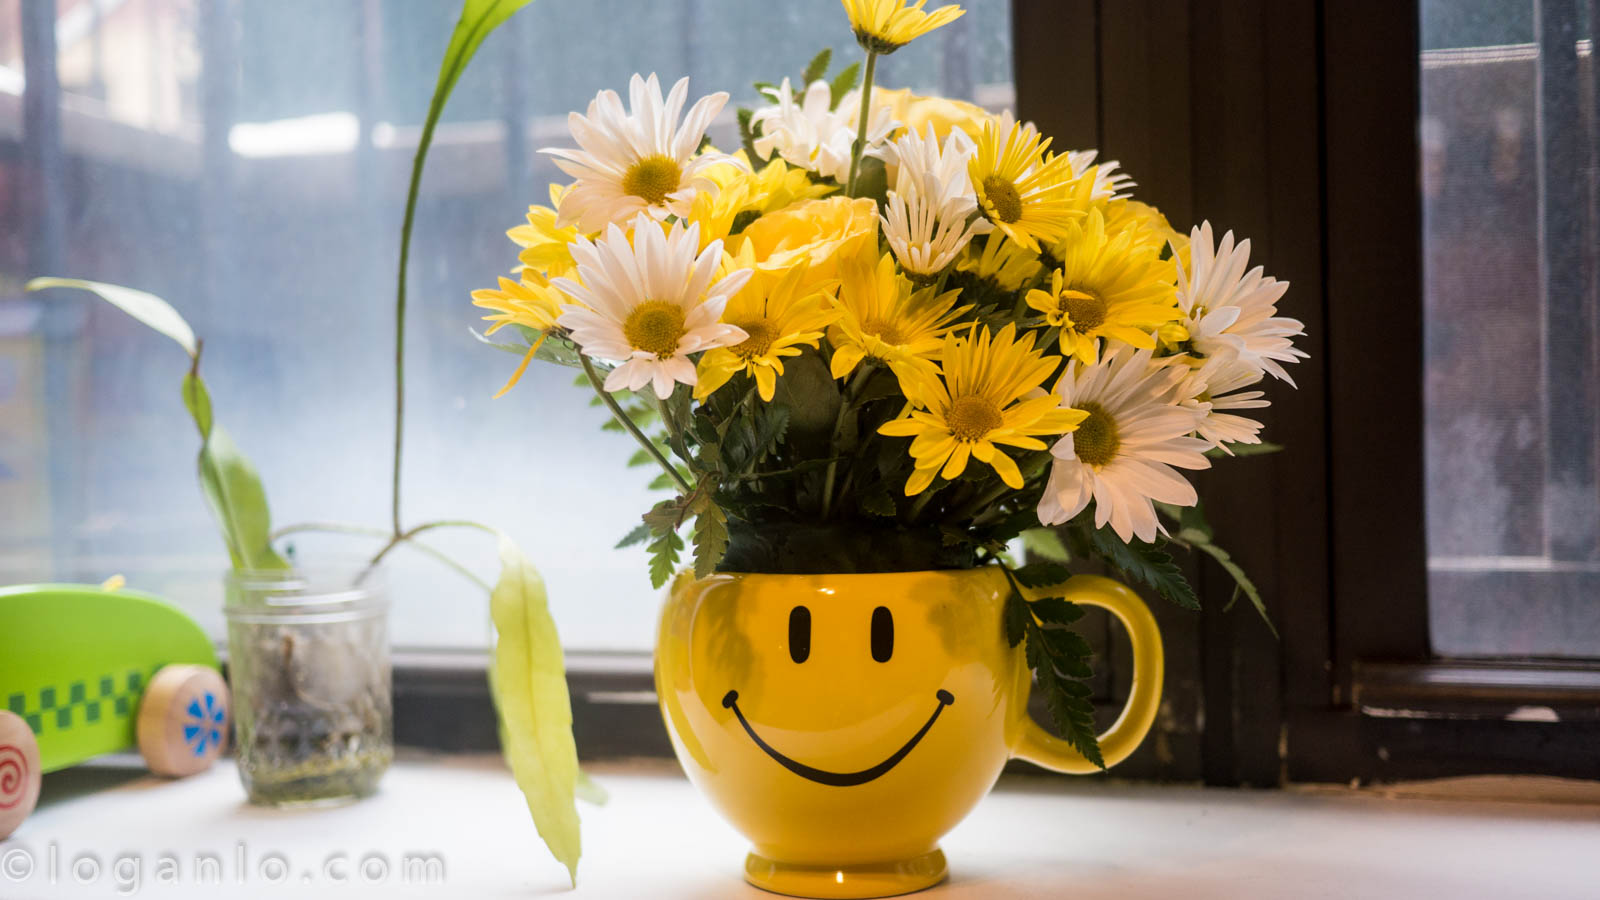 Flowers in a smiley face vase on or close to schedule flowers in a smiley face vase izmirmasajfo